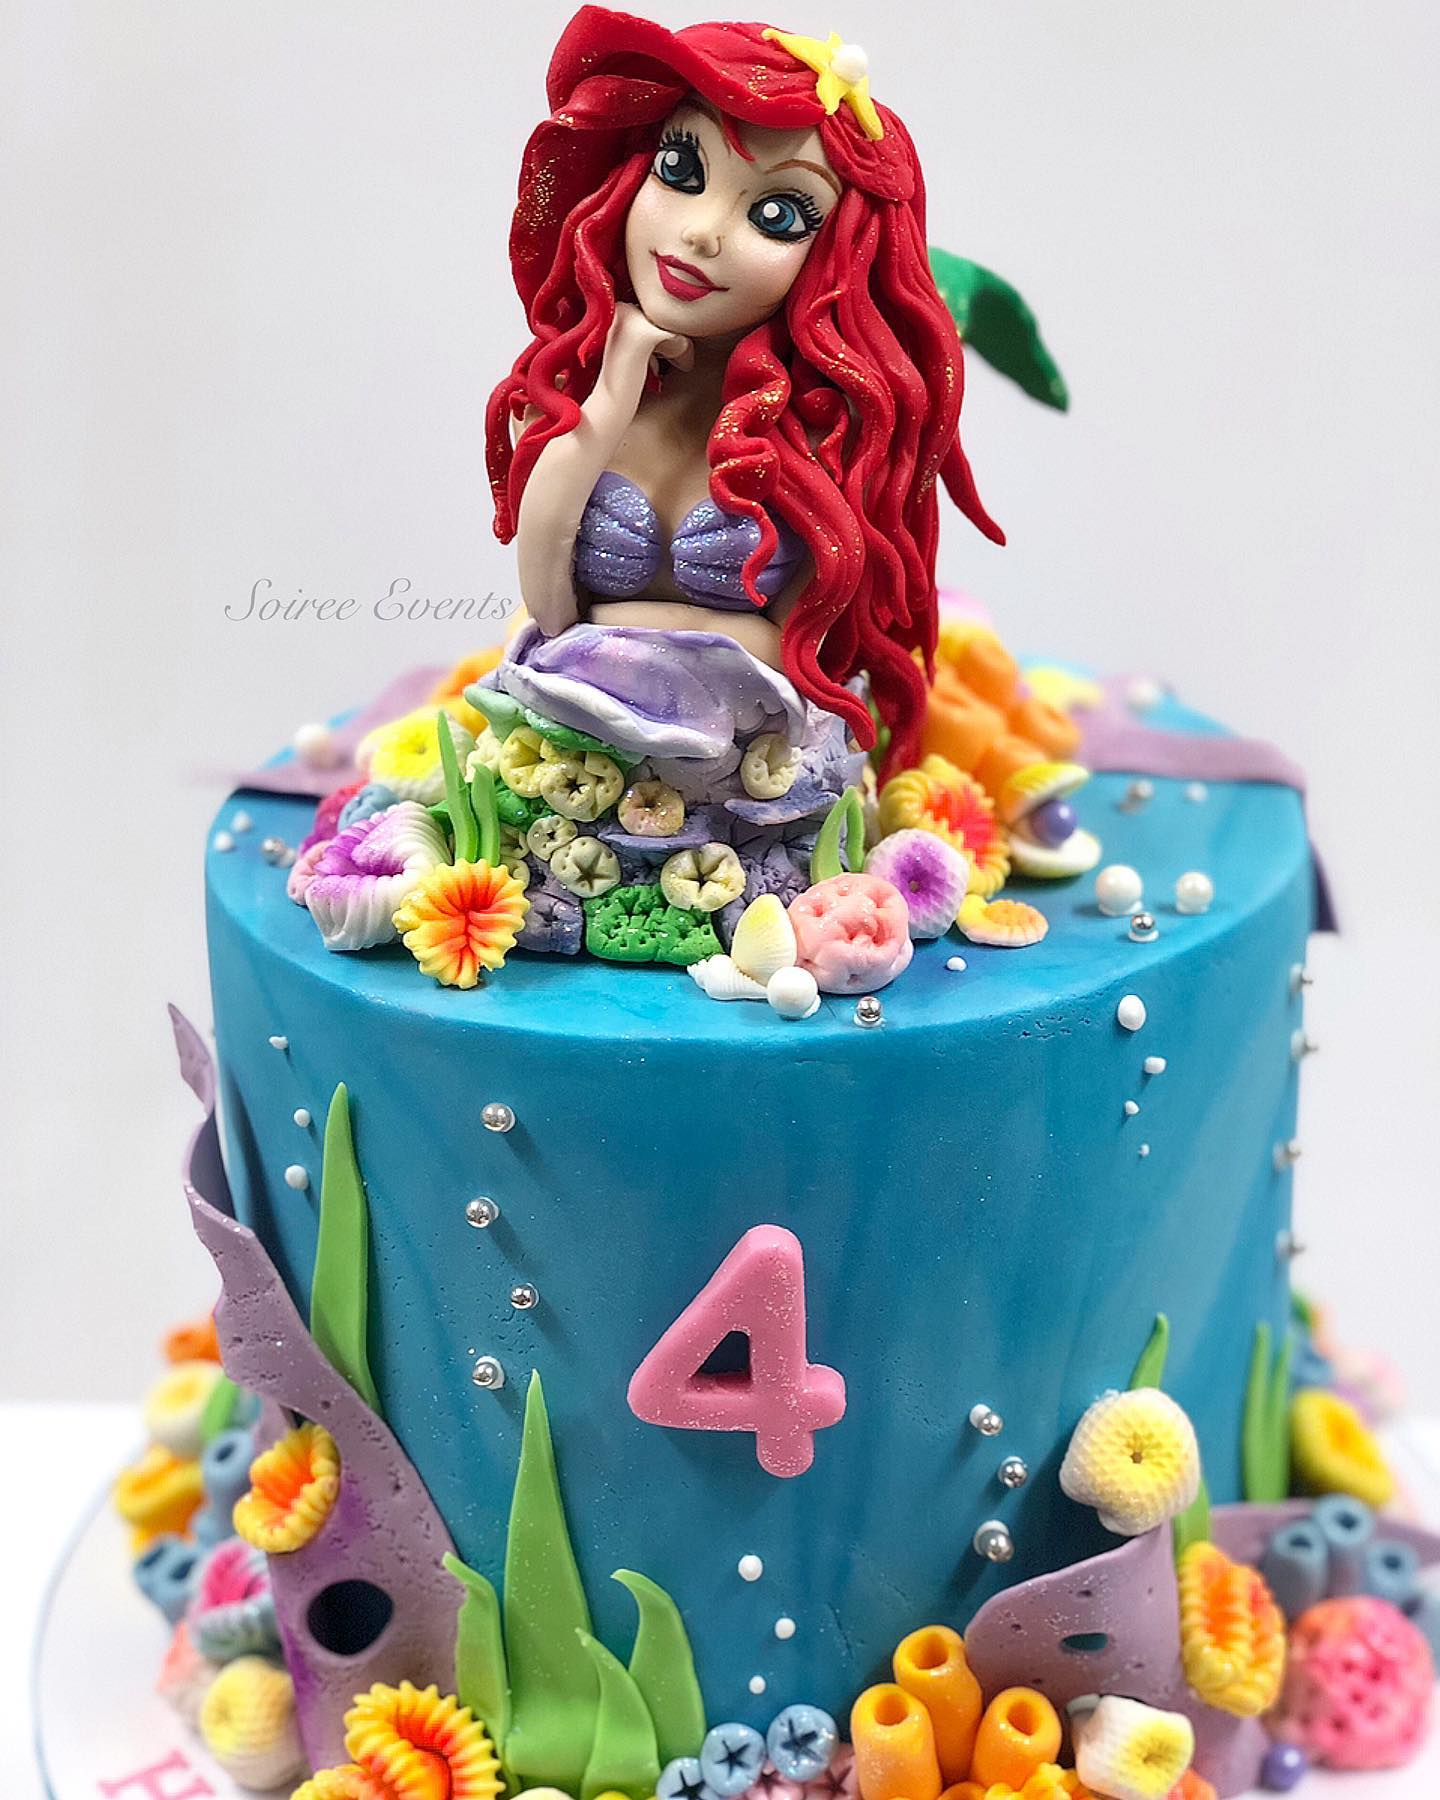 Stupendous Ariel The Little Mermaid Cake Soiree Personalised Birthday Cards Paralily Jamesorg